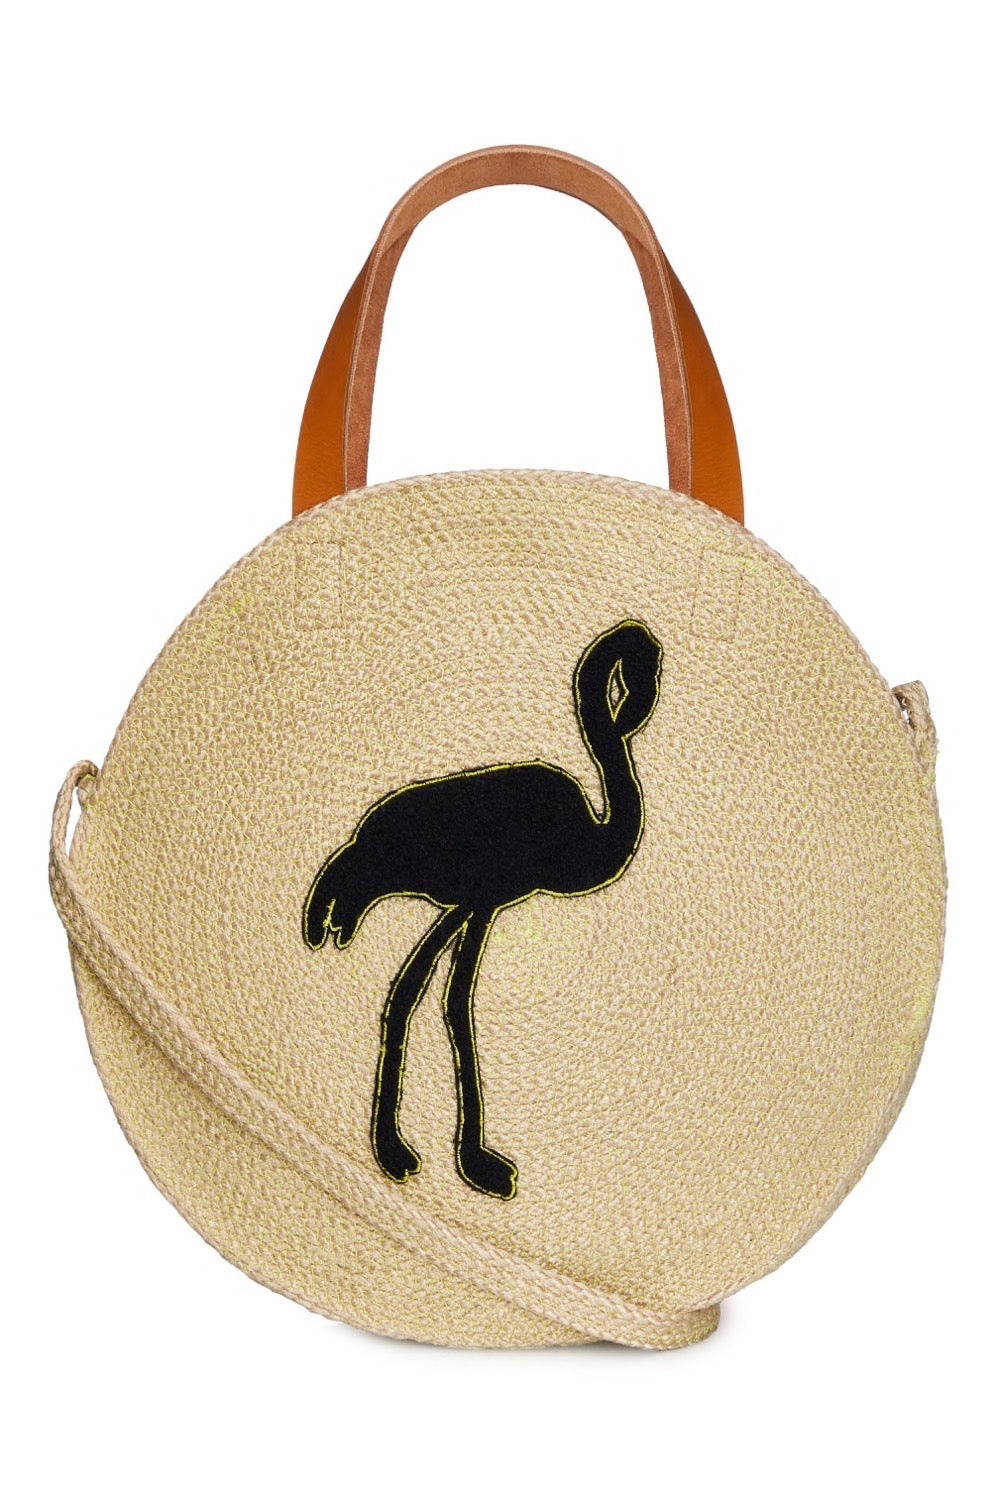 Jute Round Shopper - Flamingo